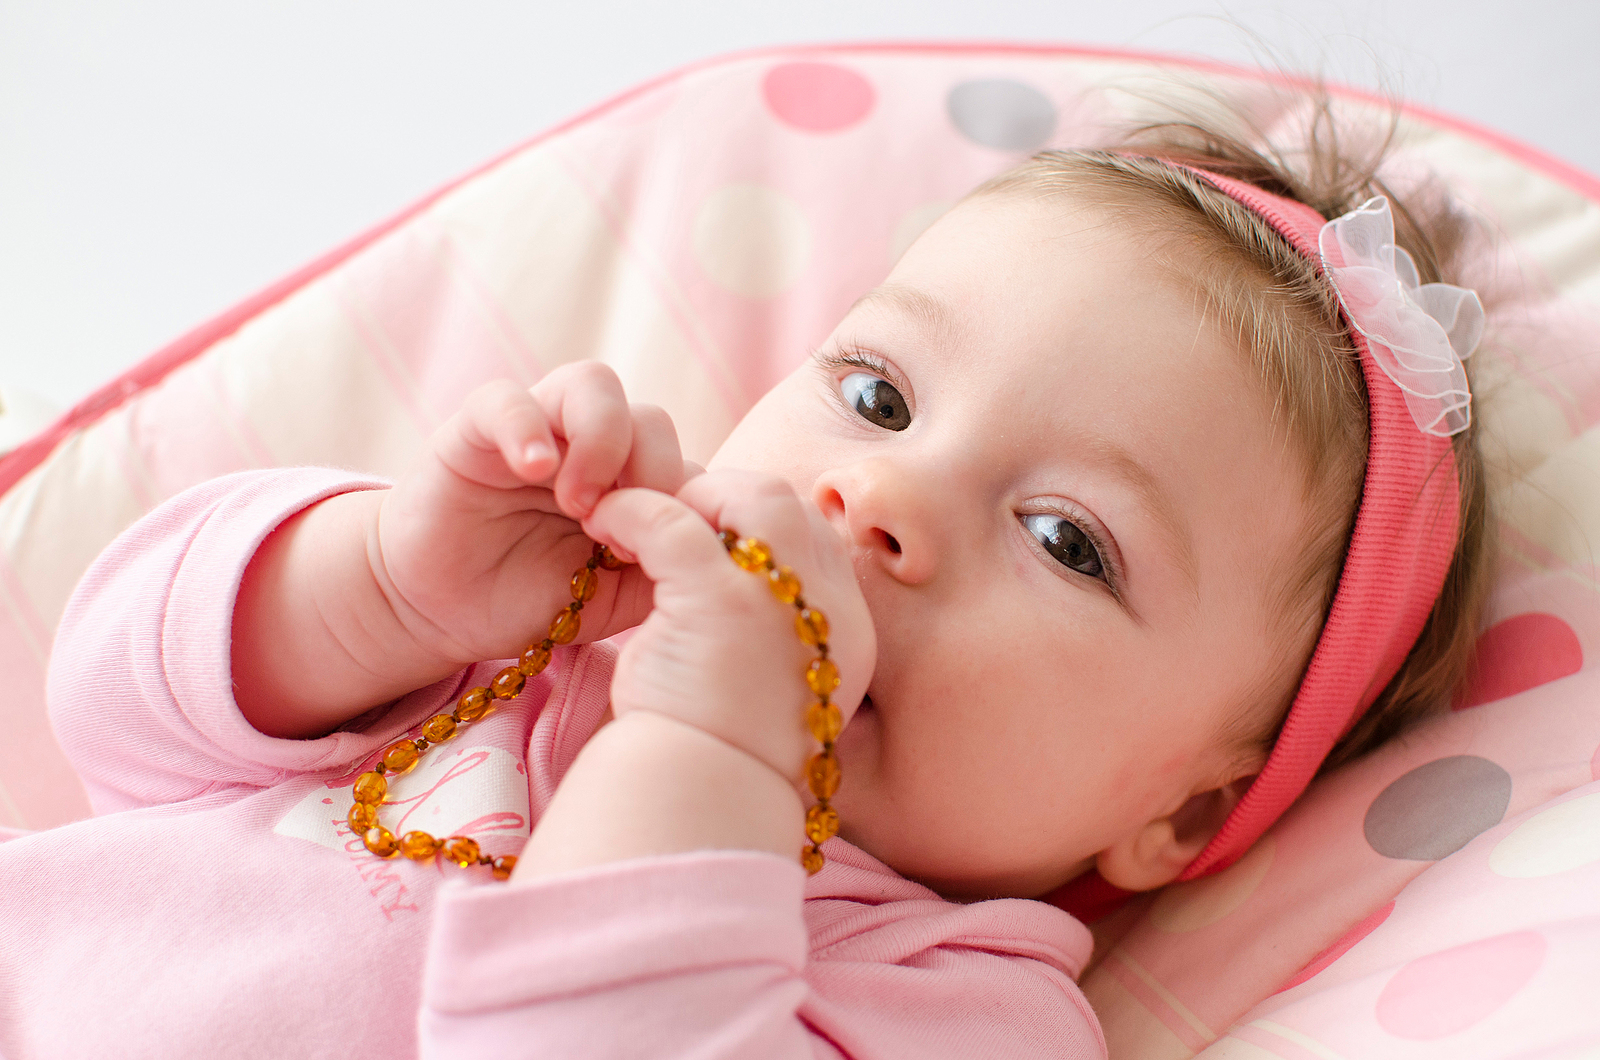 A new study concluded that amber necklaces could pose a strangulation risk to children.